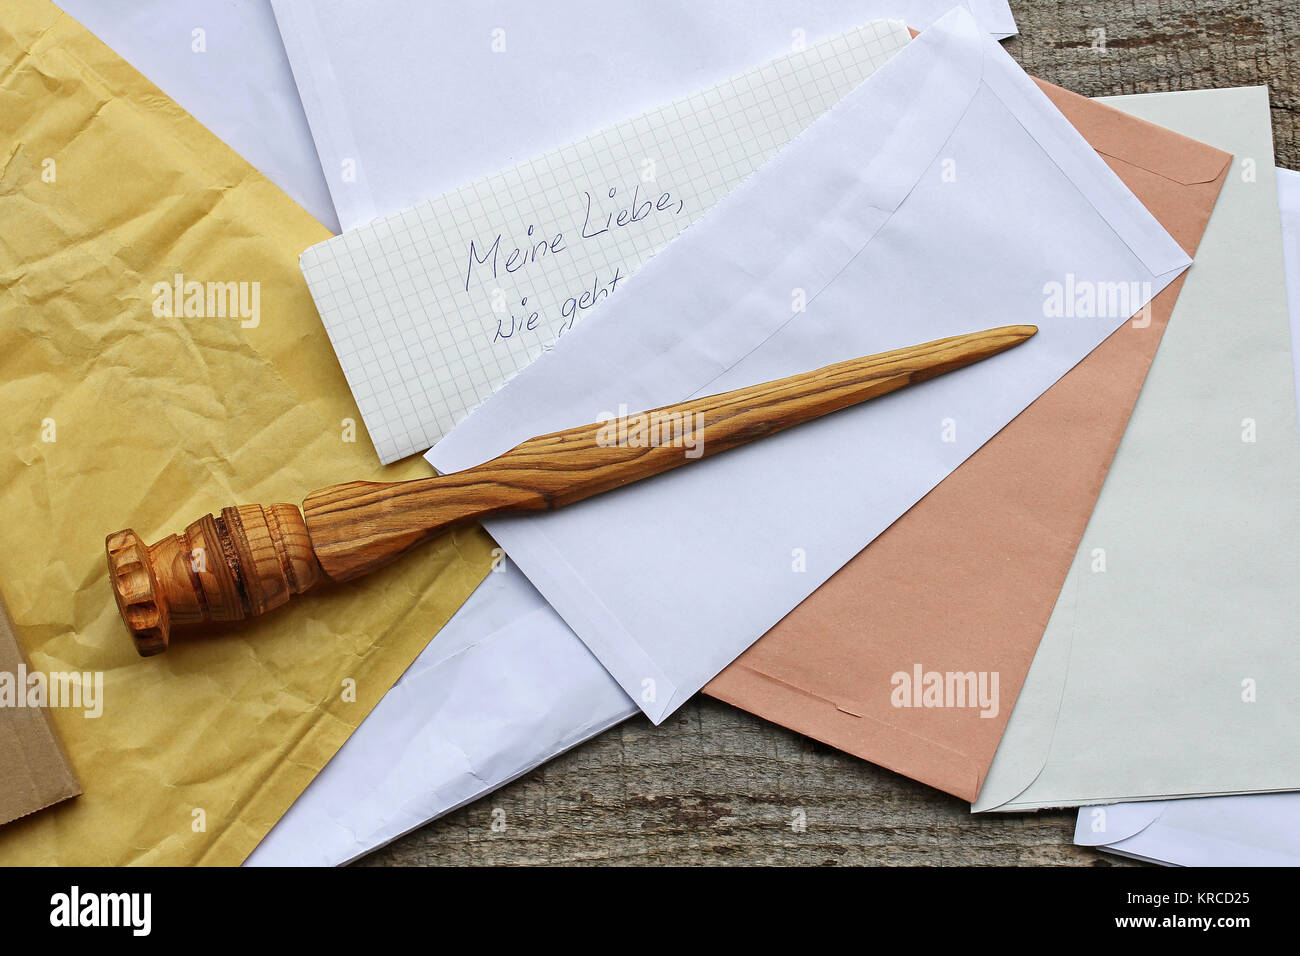 a letter opener in wood and open mail. letters received Stock Photo